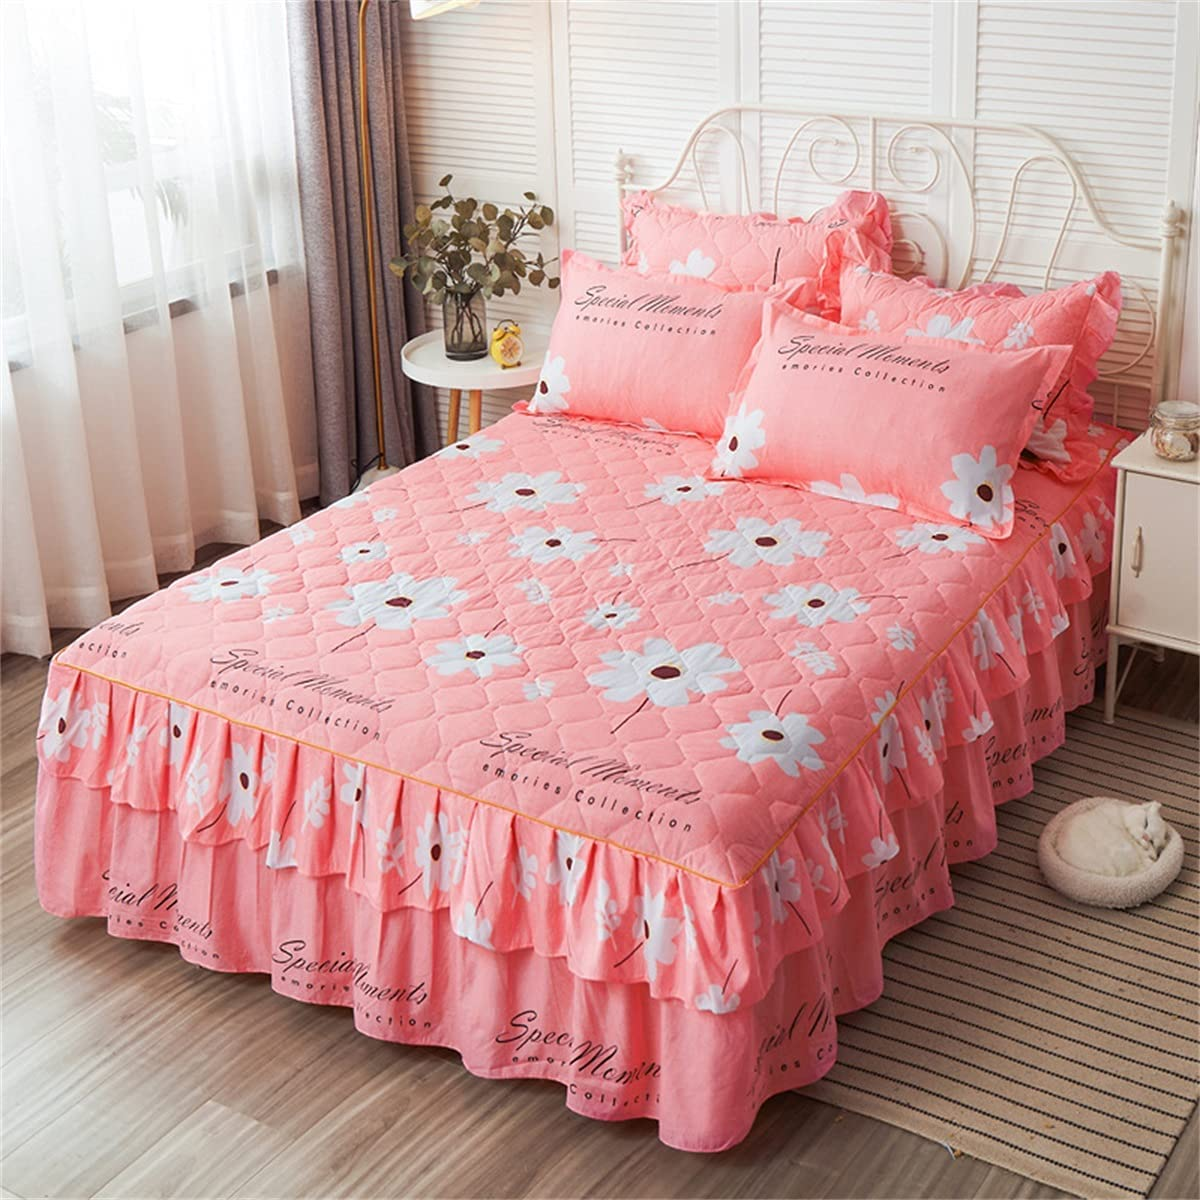 Industry No. 1 CHLDDHC 3-Piece Set Fitted New Shipping Free Shipping Bed Gau Skirt Coverlet lace Bedspread